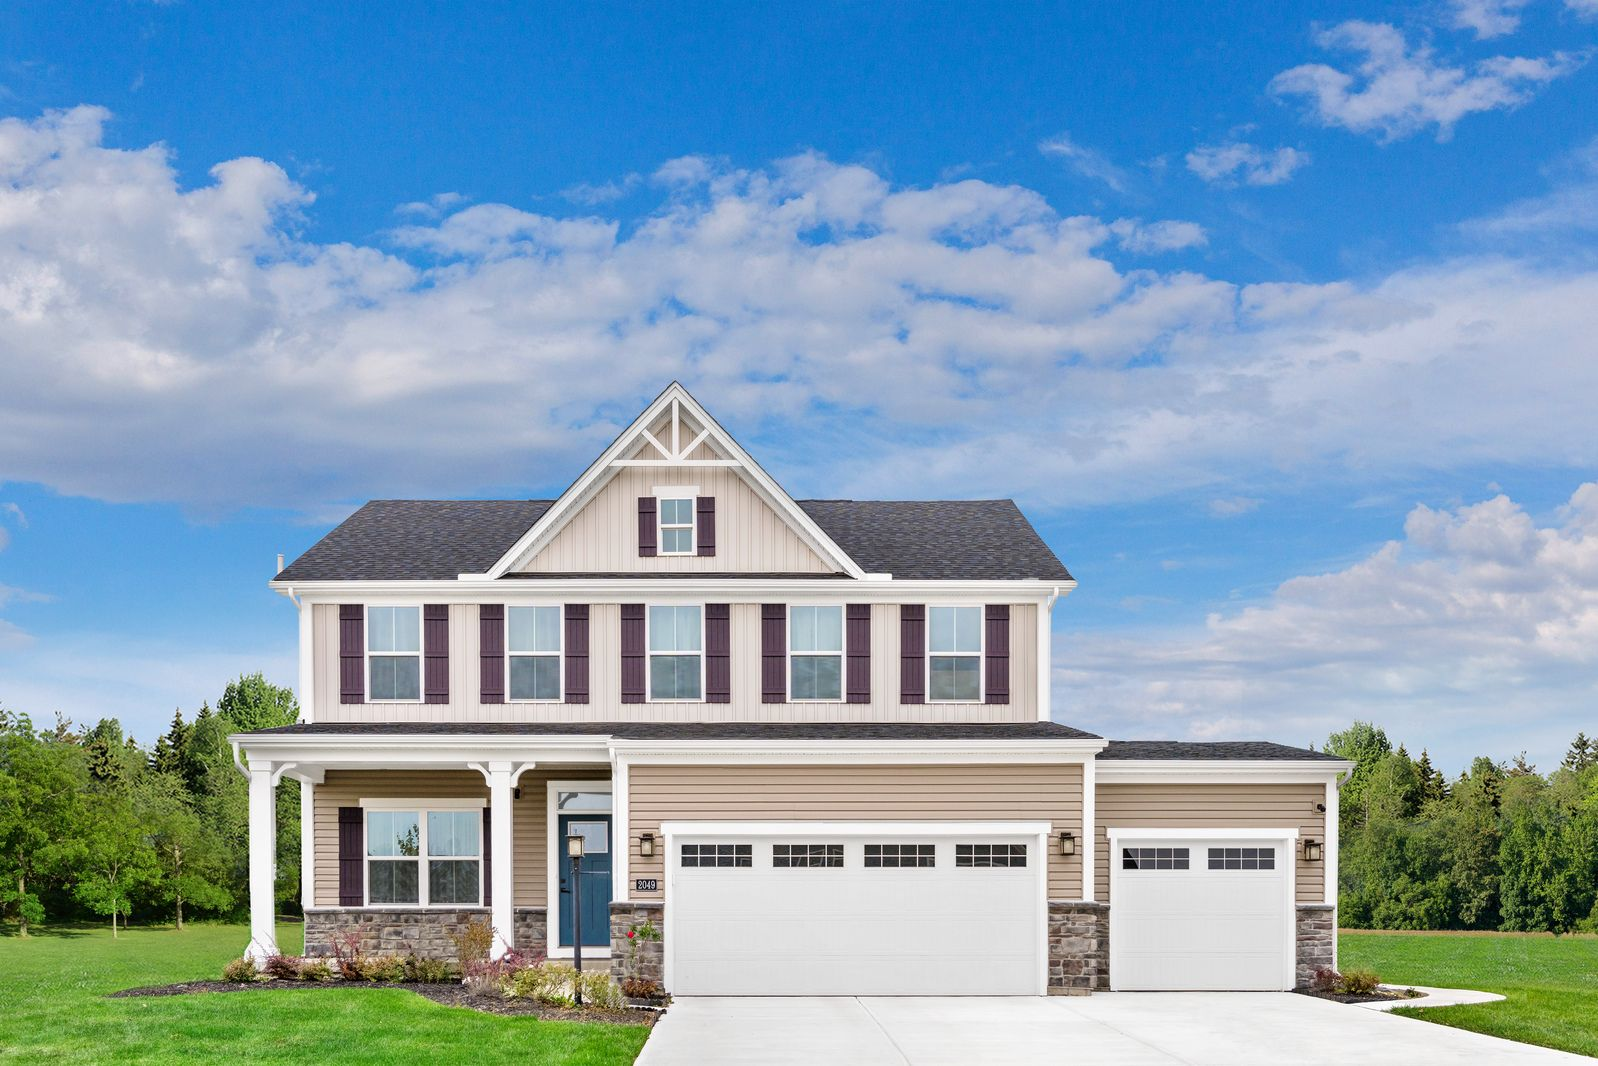 Welcome to Heritage Groves at Grande Reserve: Largest Homesites Just Released!:The most amenity-rich new home community with included luxury features in Yorkville. Premier homesites w/ 3-car garages, basements, and no SSA Tax. Click hereto schedule your appointment.